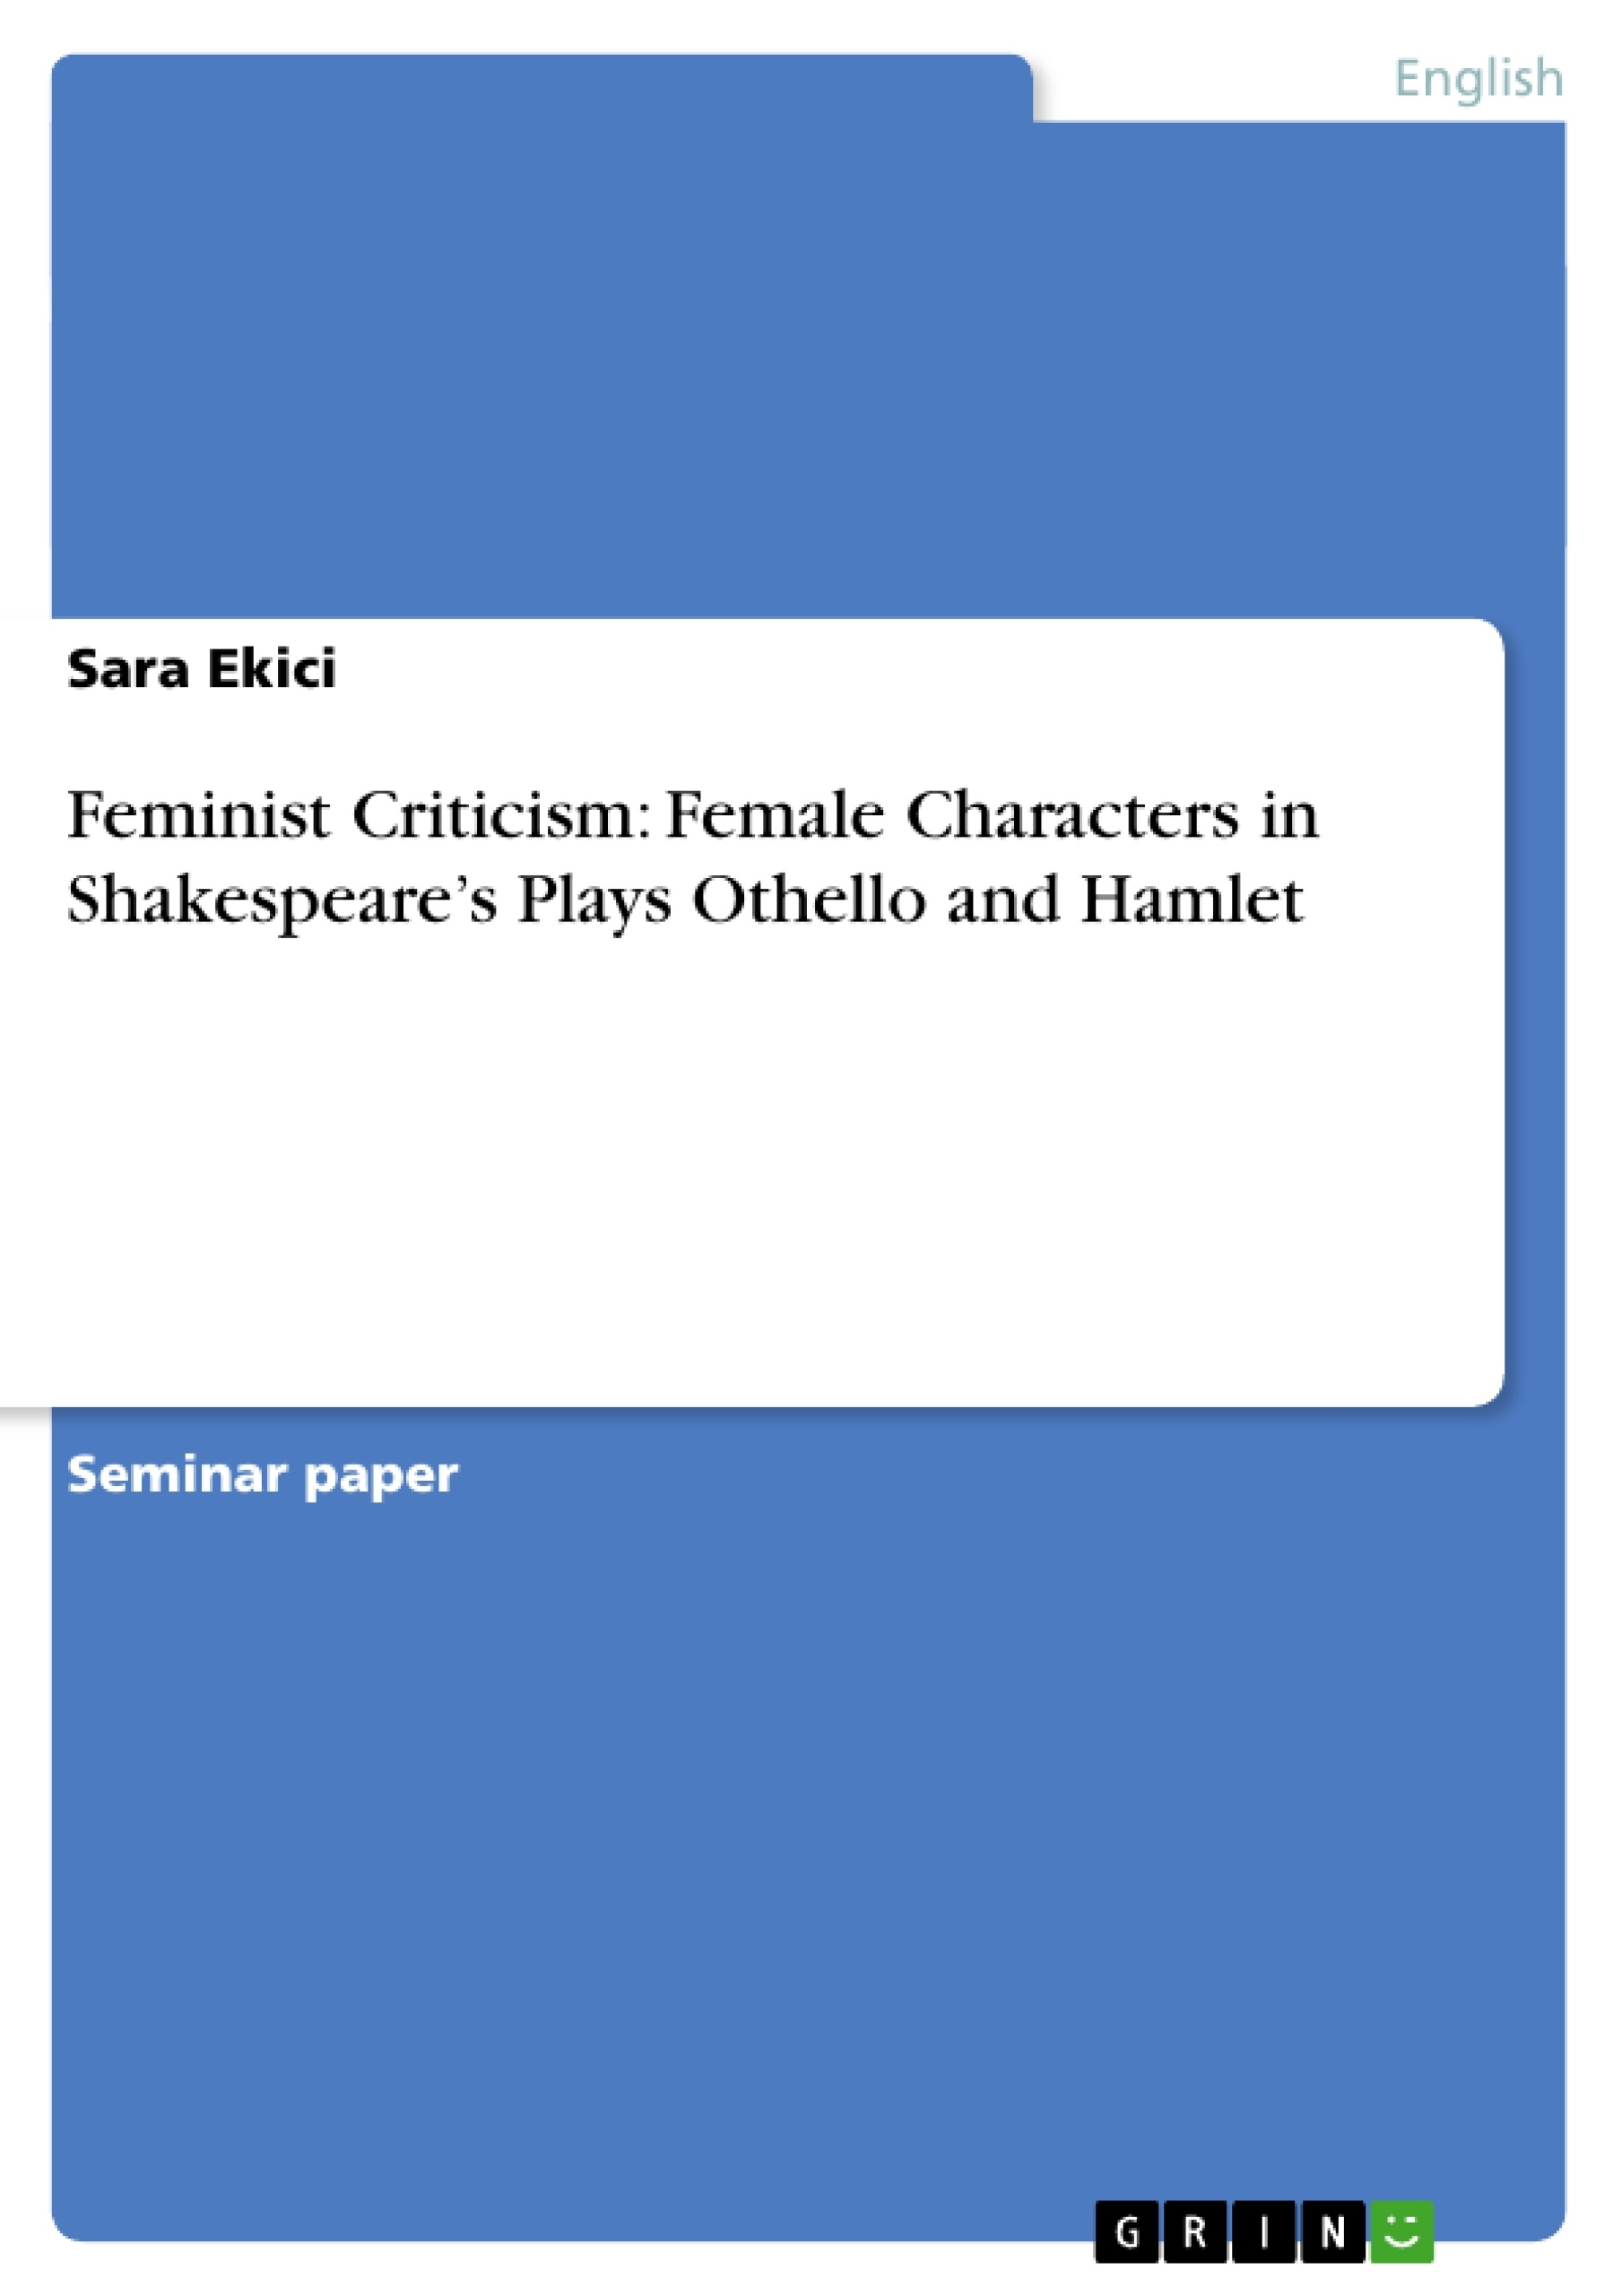 feminist criticism female characters in shakespeare s plays upload your own papers earn money and win an iphone 7